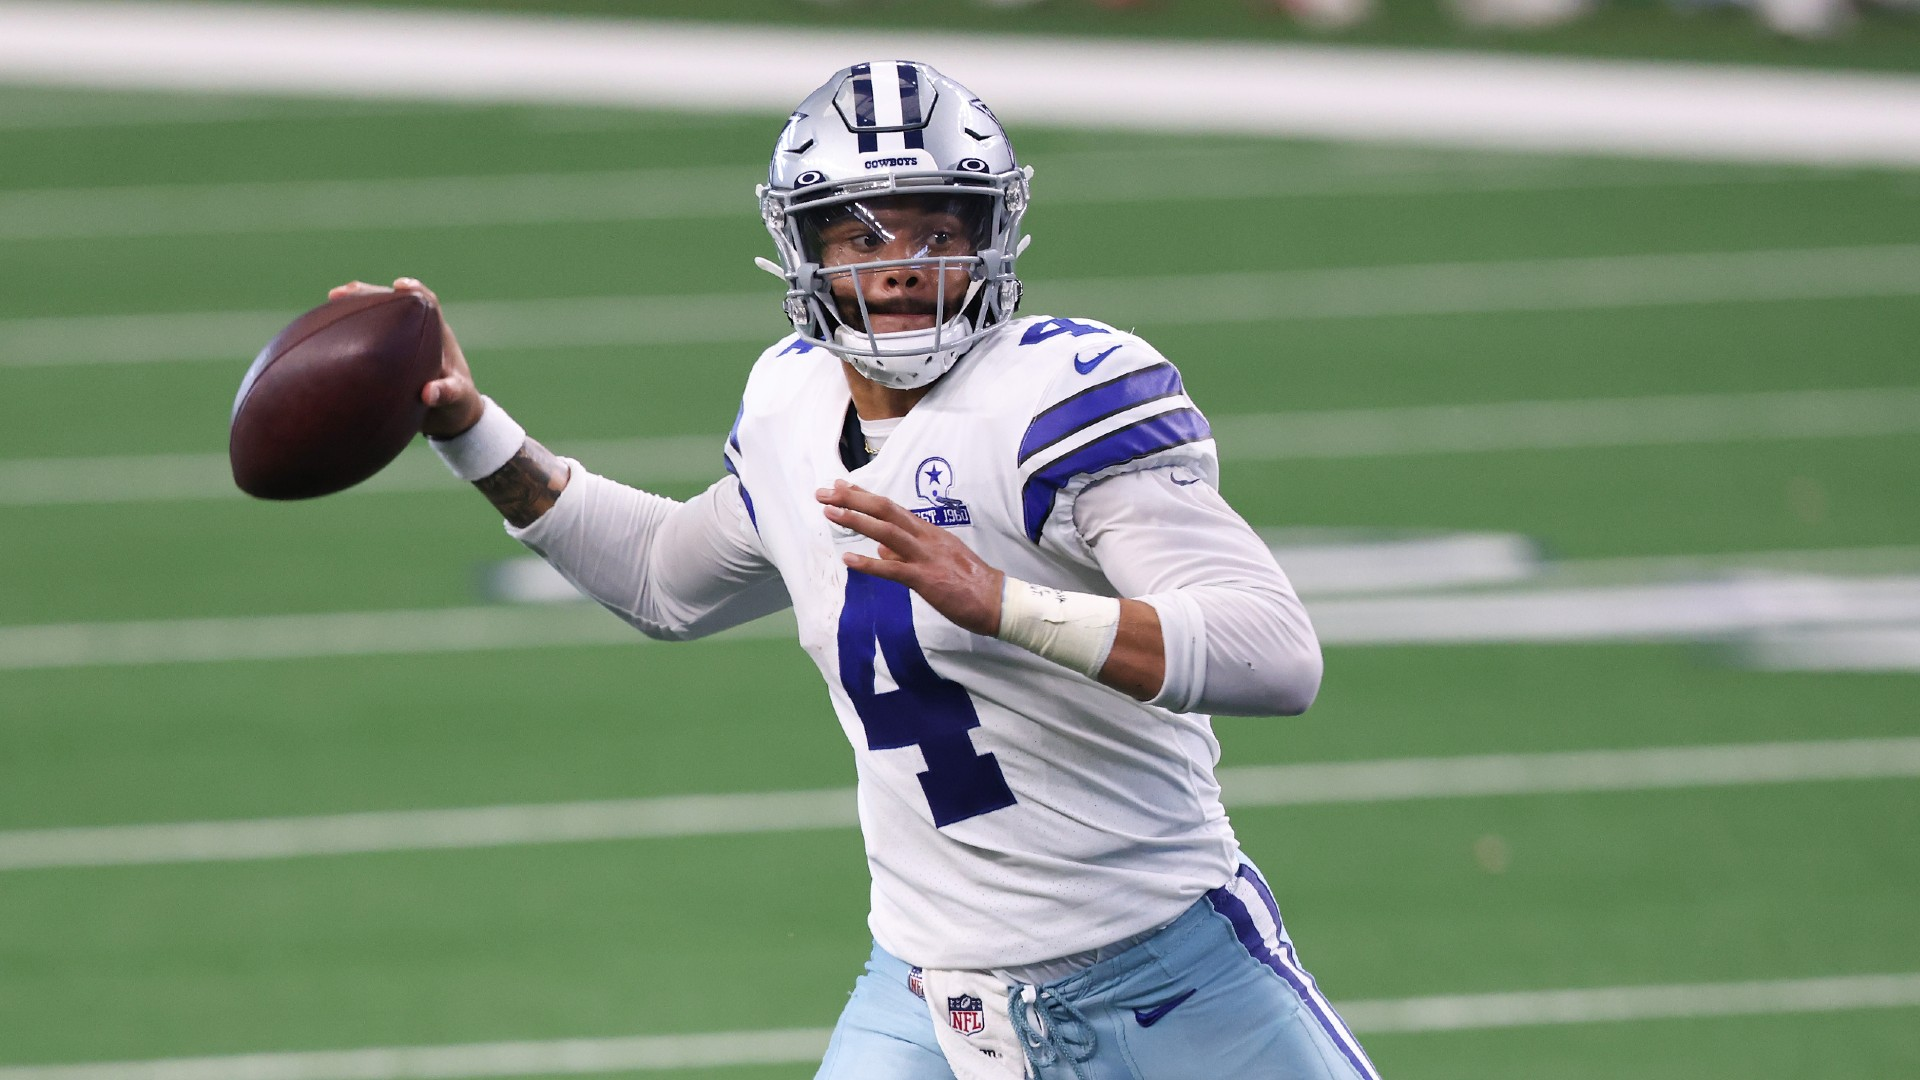 NFL deletes 'can't miss play' highlight of Dak Prescott's injury on official YouTube channel